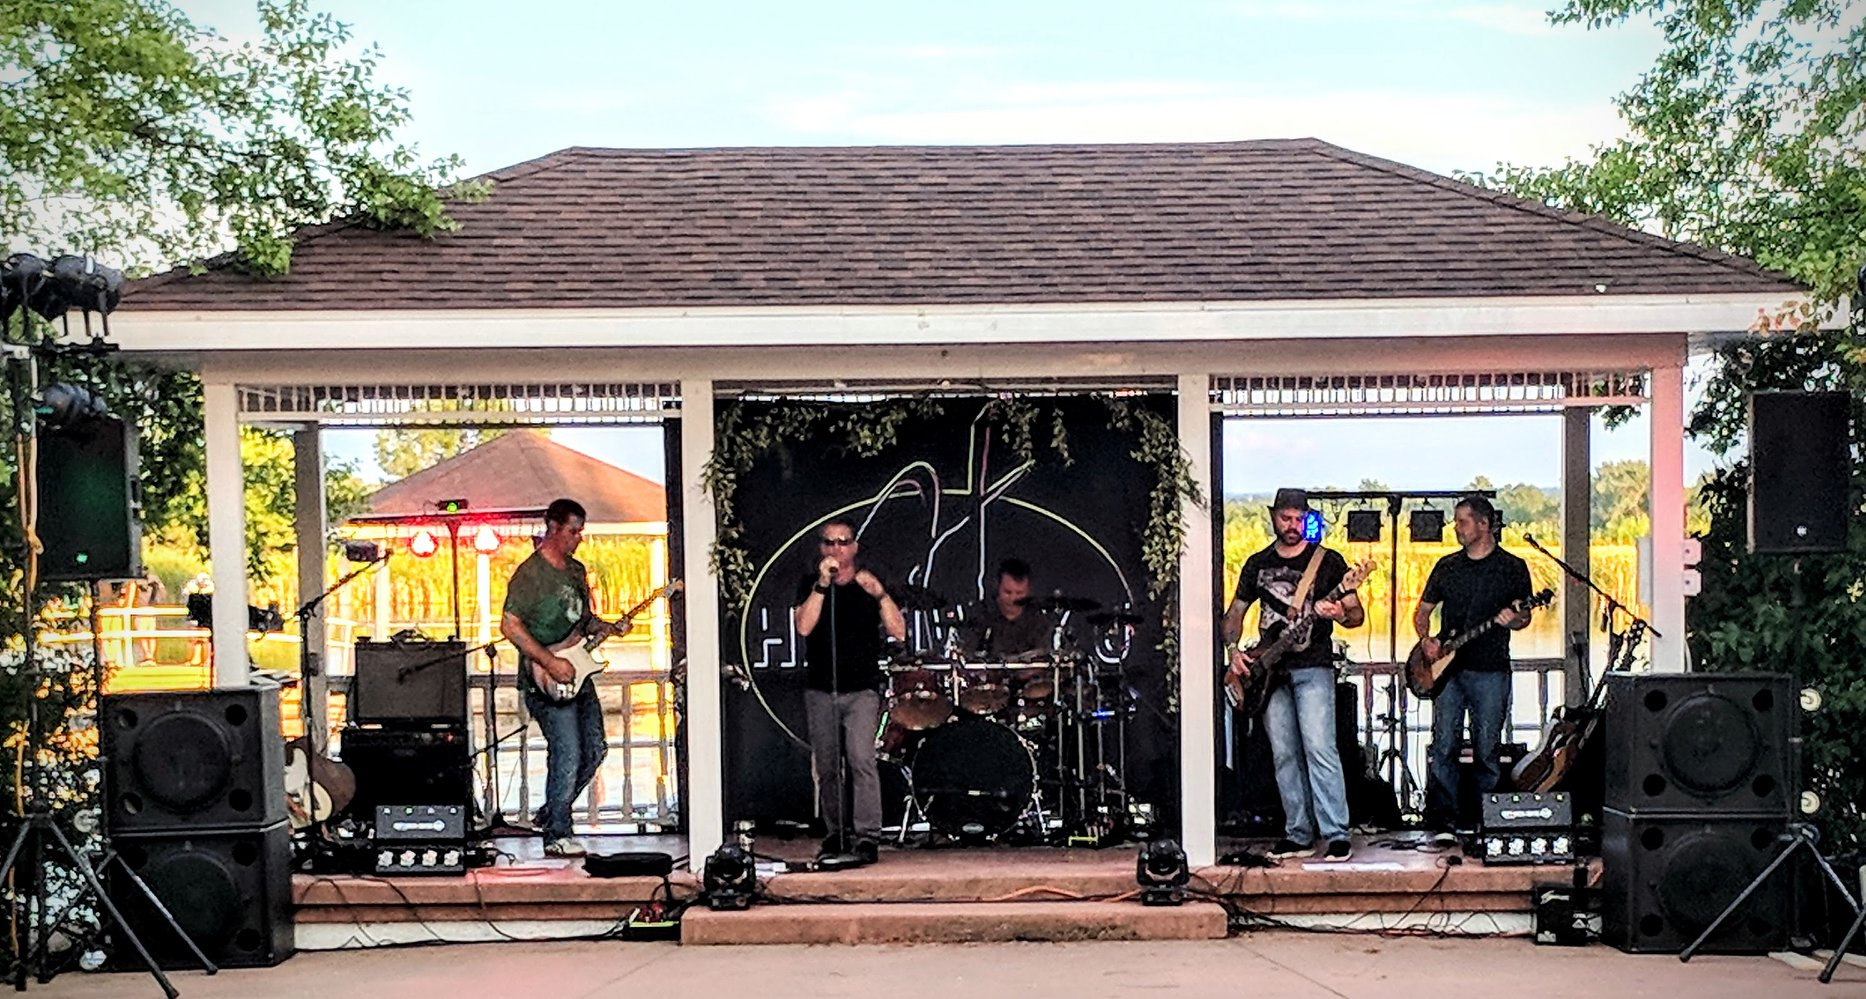 Highway J at Mackinaw Valley Winery